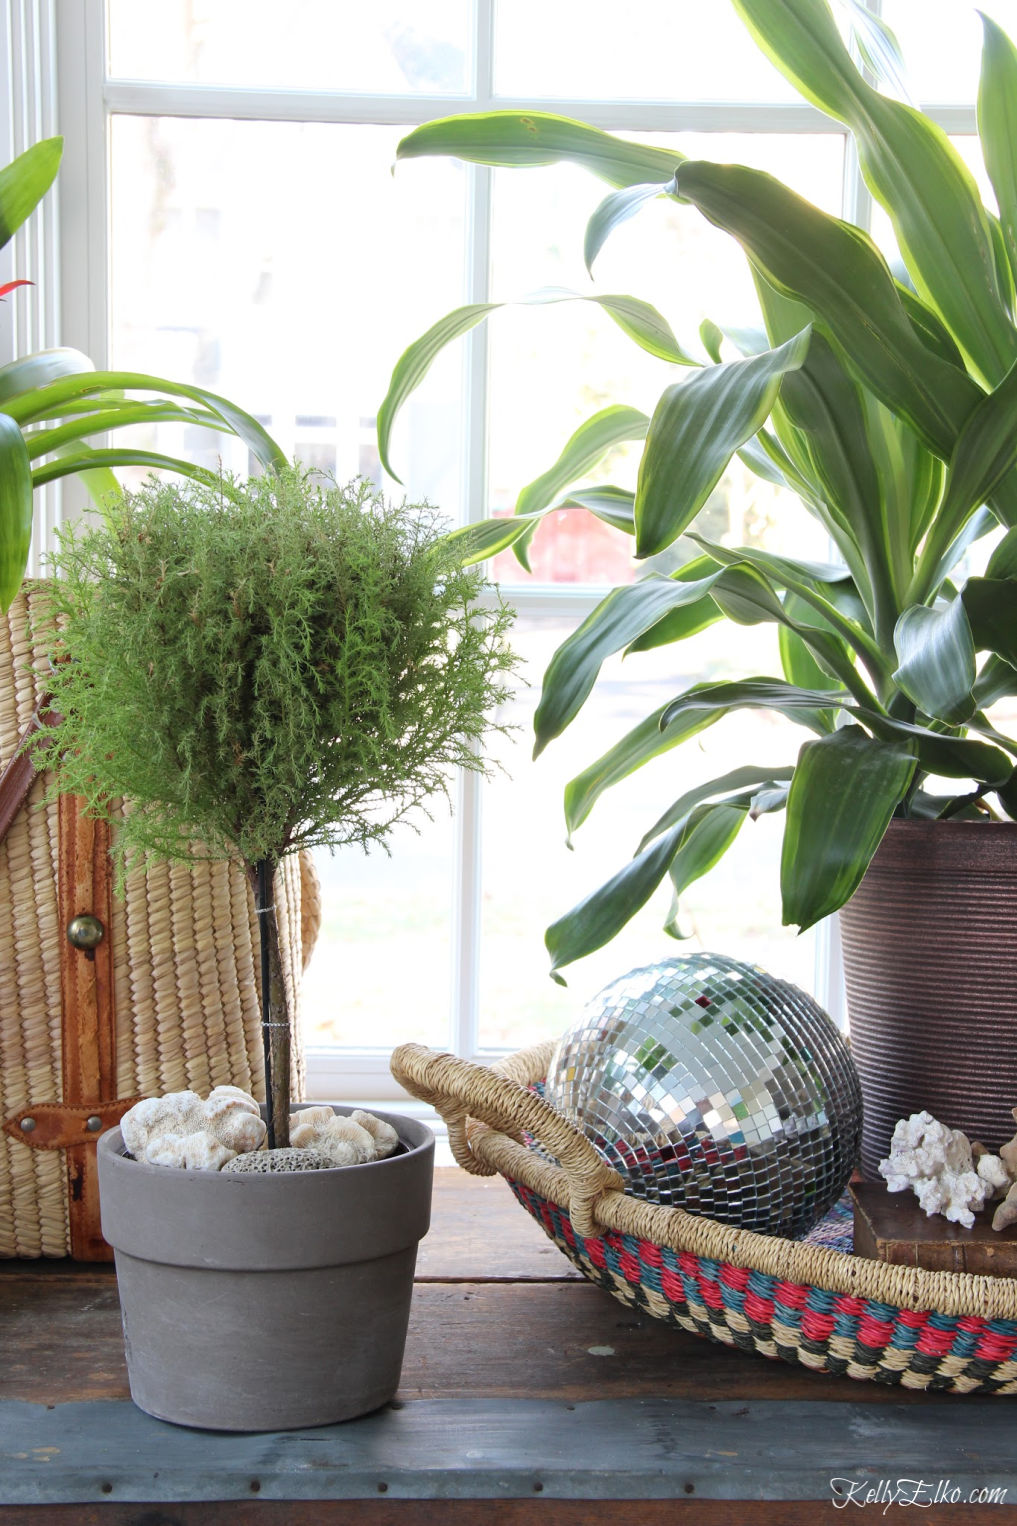 Topiaries are the perfect addition to any house kellyelko.com #houseplants #plants #topiary #topiaries #jungalow